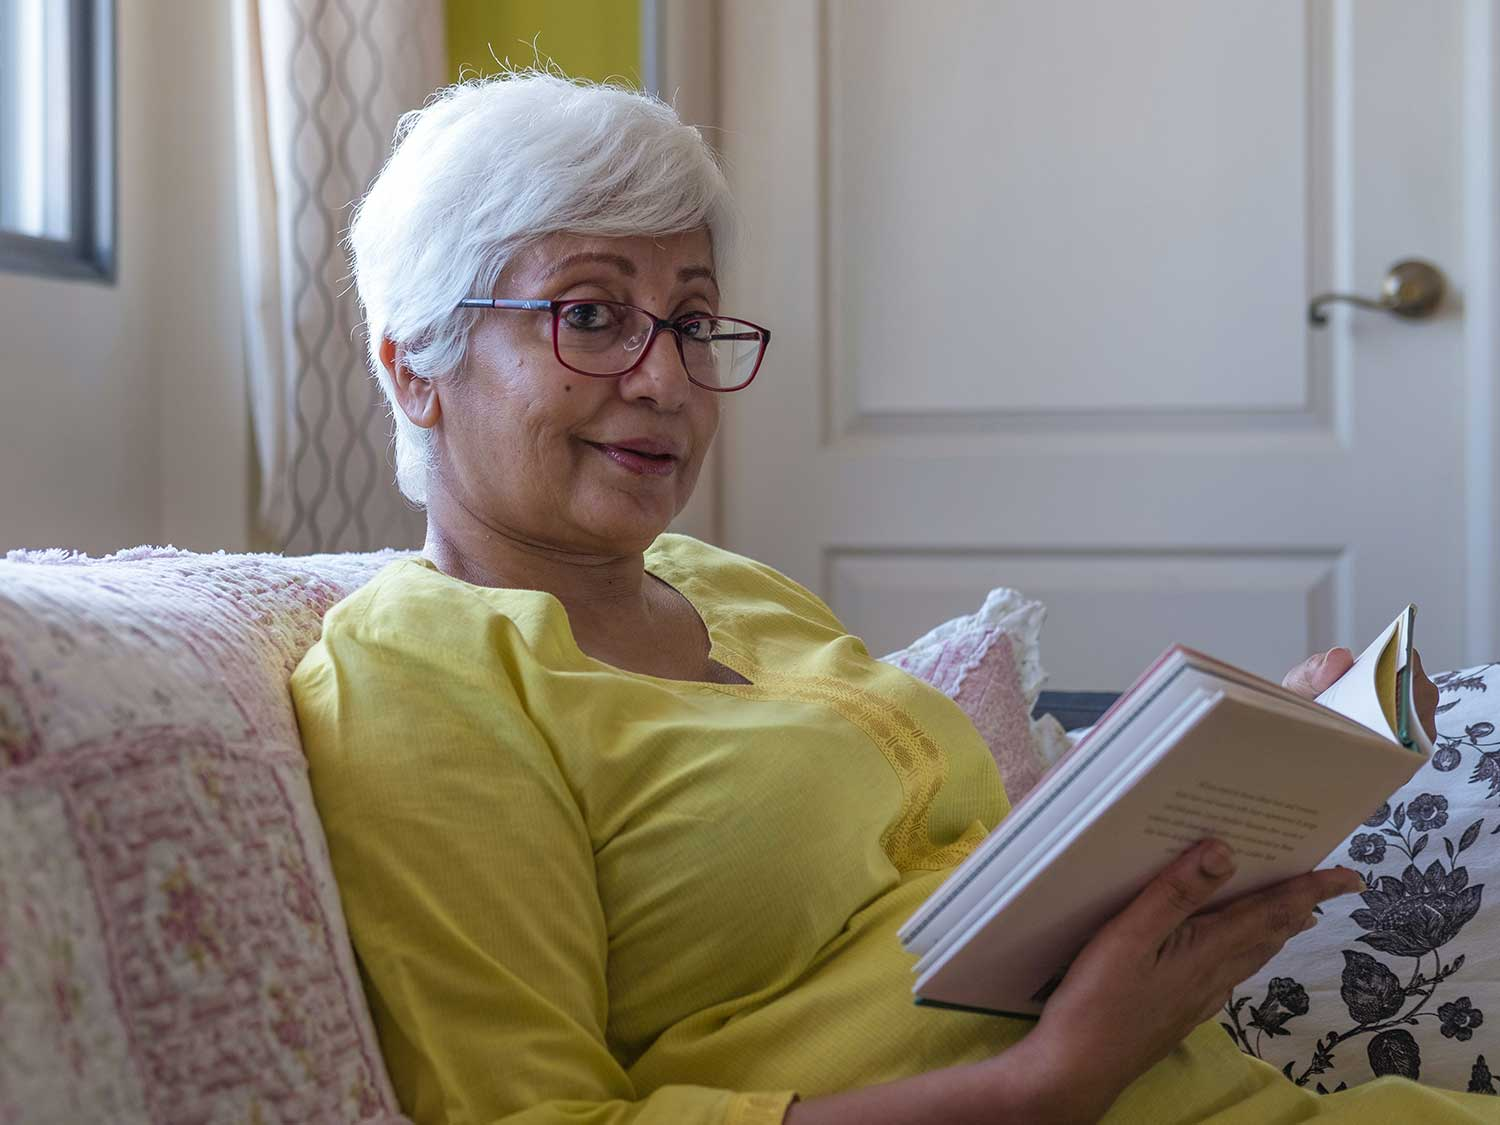 Woman reading book with reading glasses.